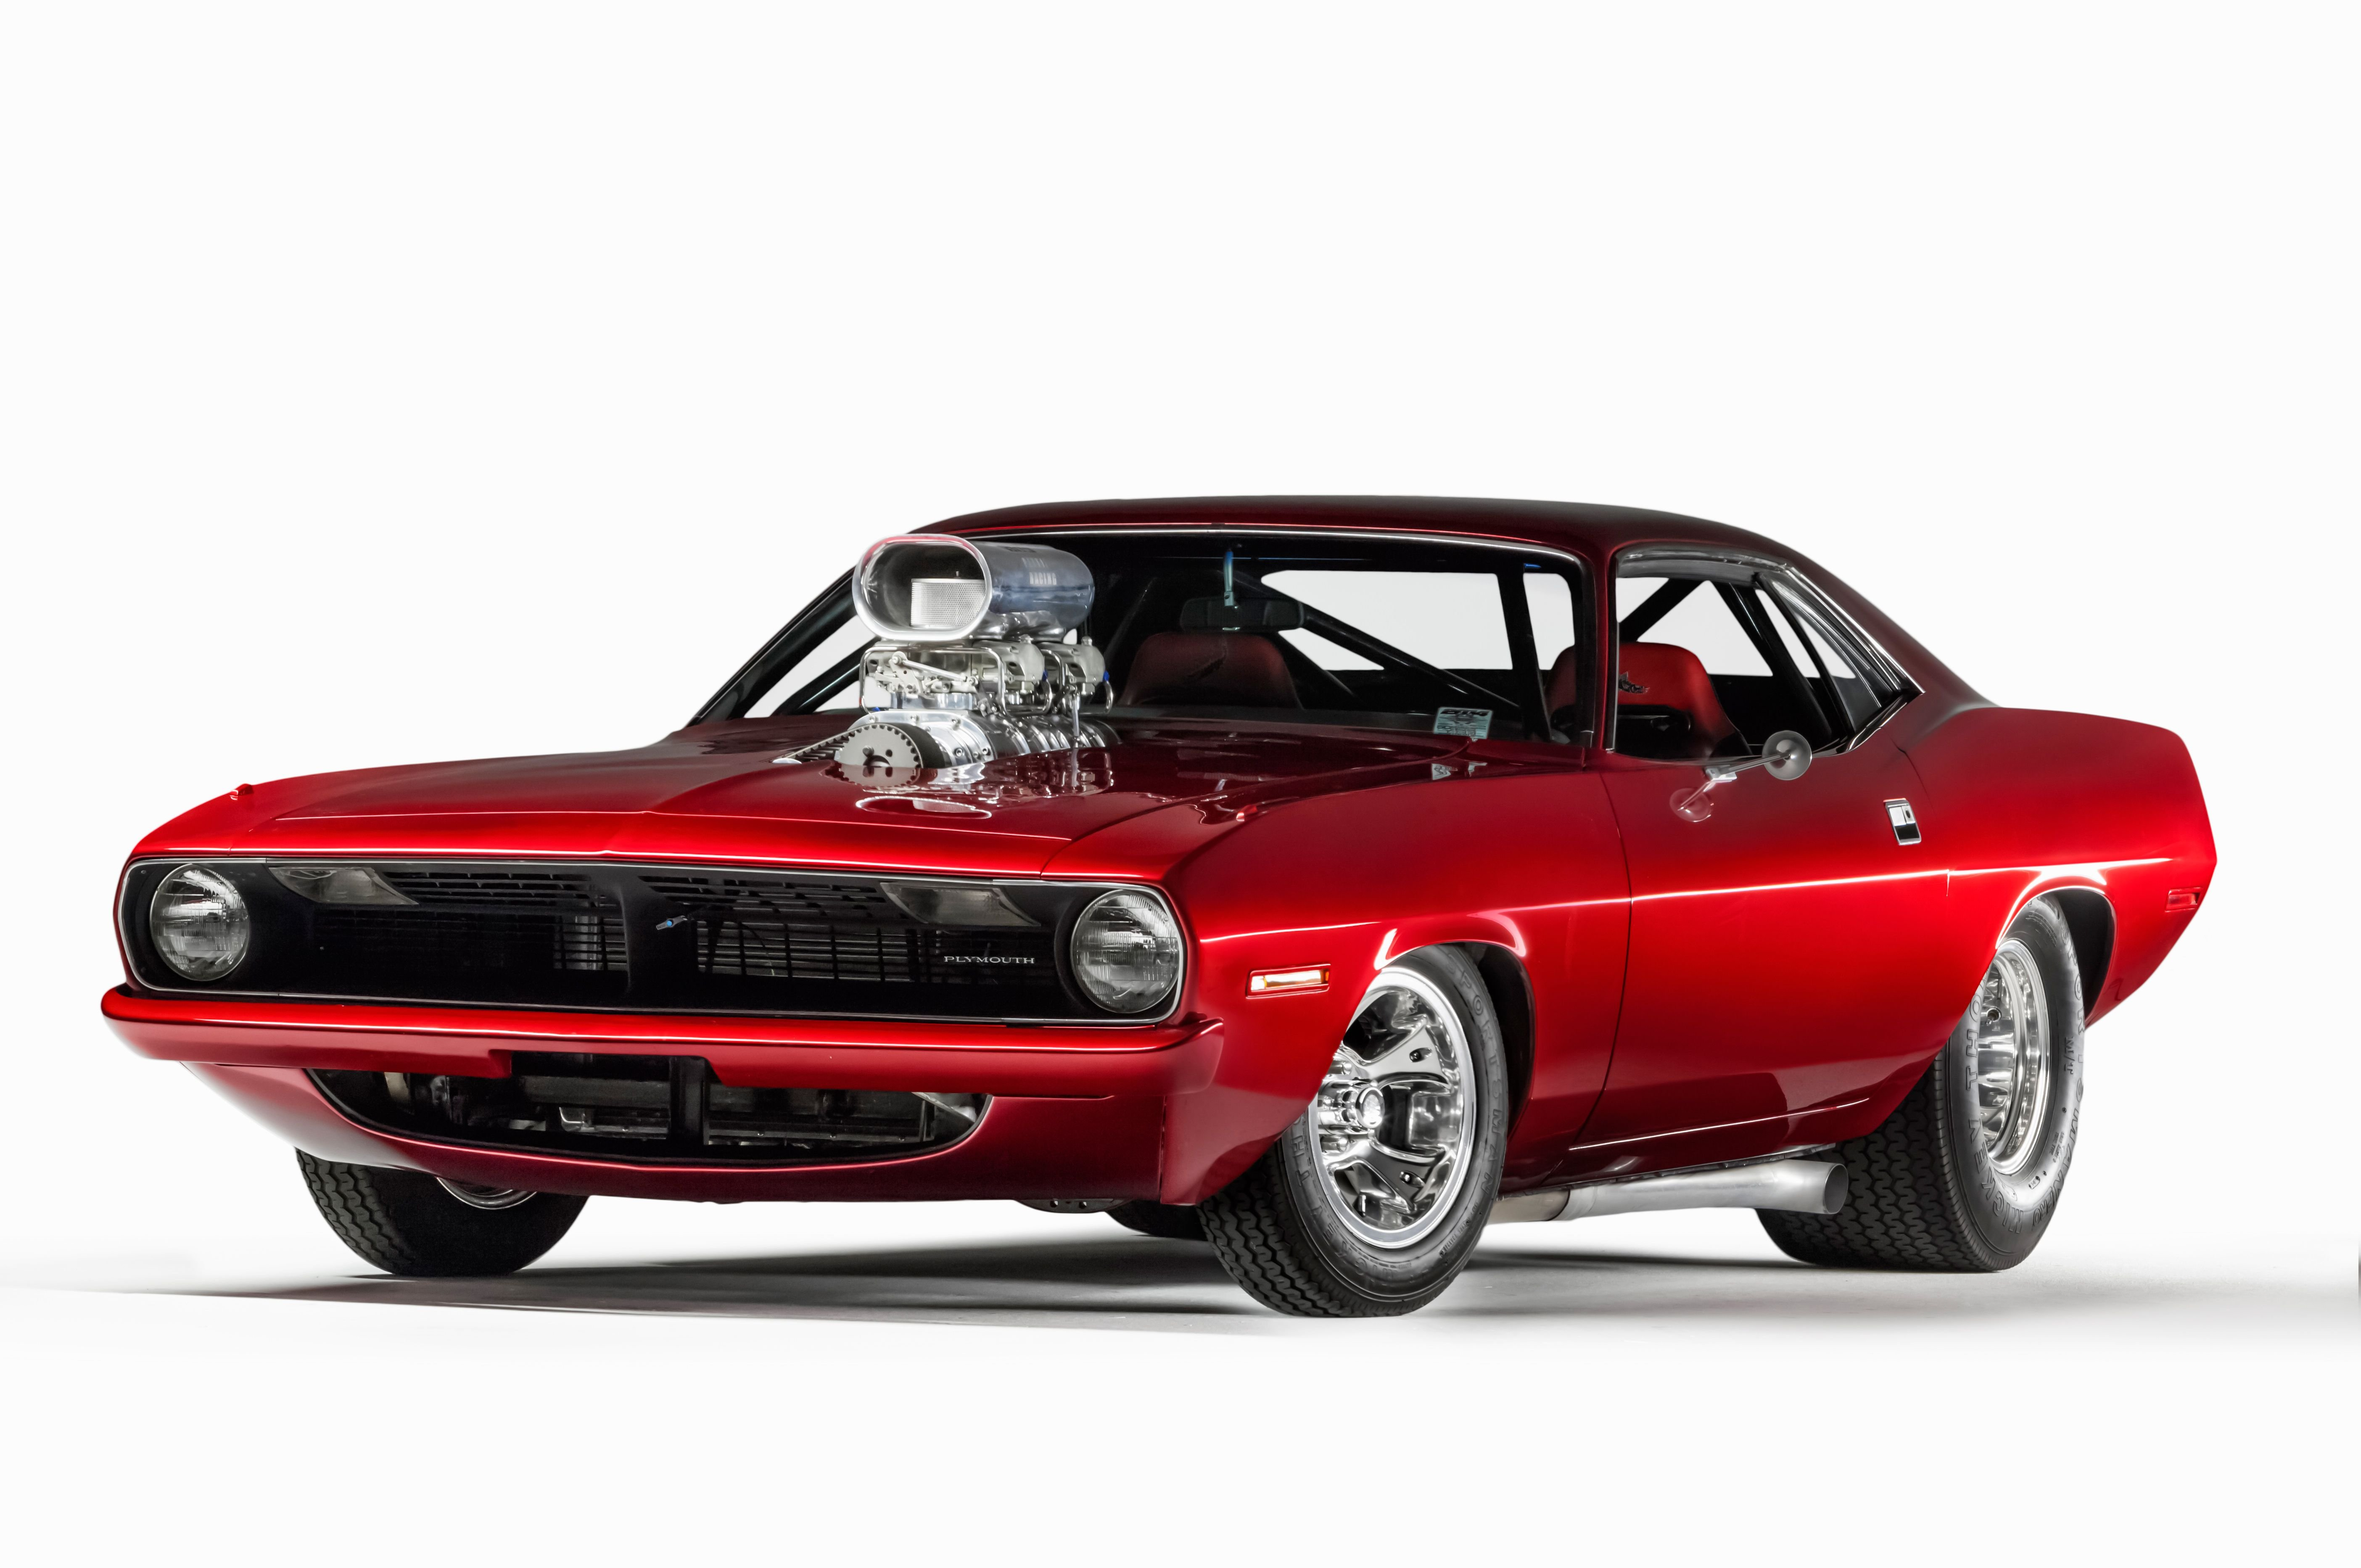 1970 Plymouth Barracuda Pro Street-01 wallpaper